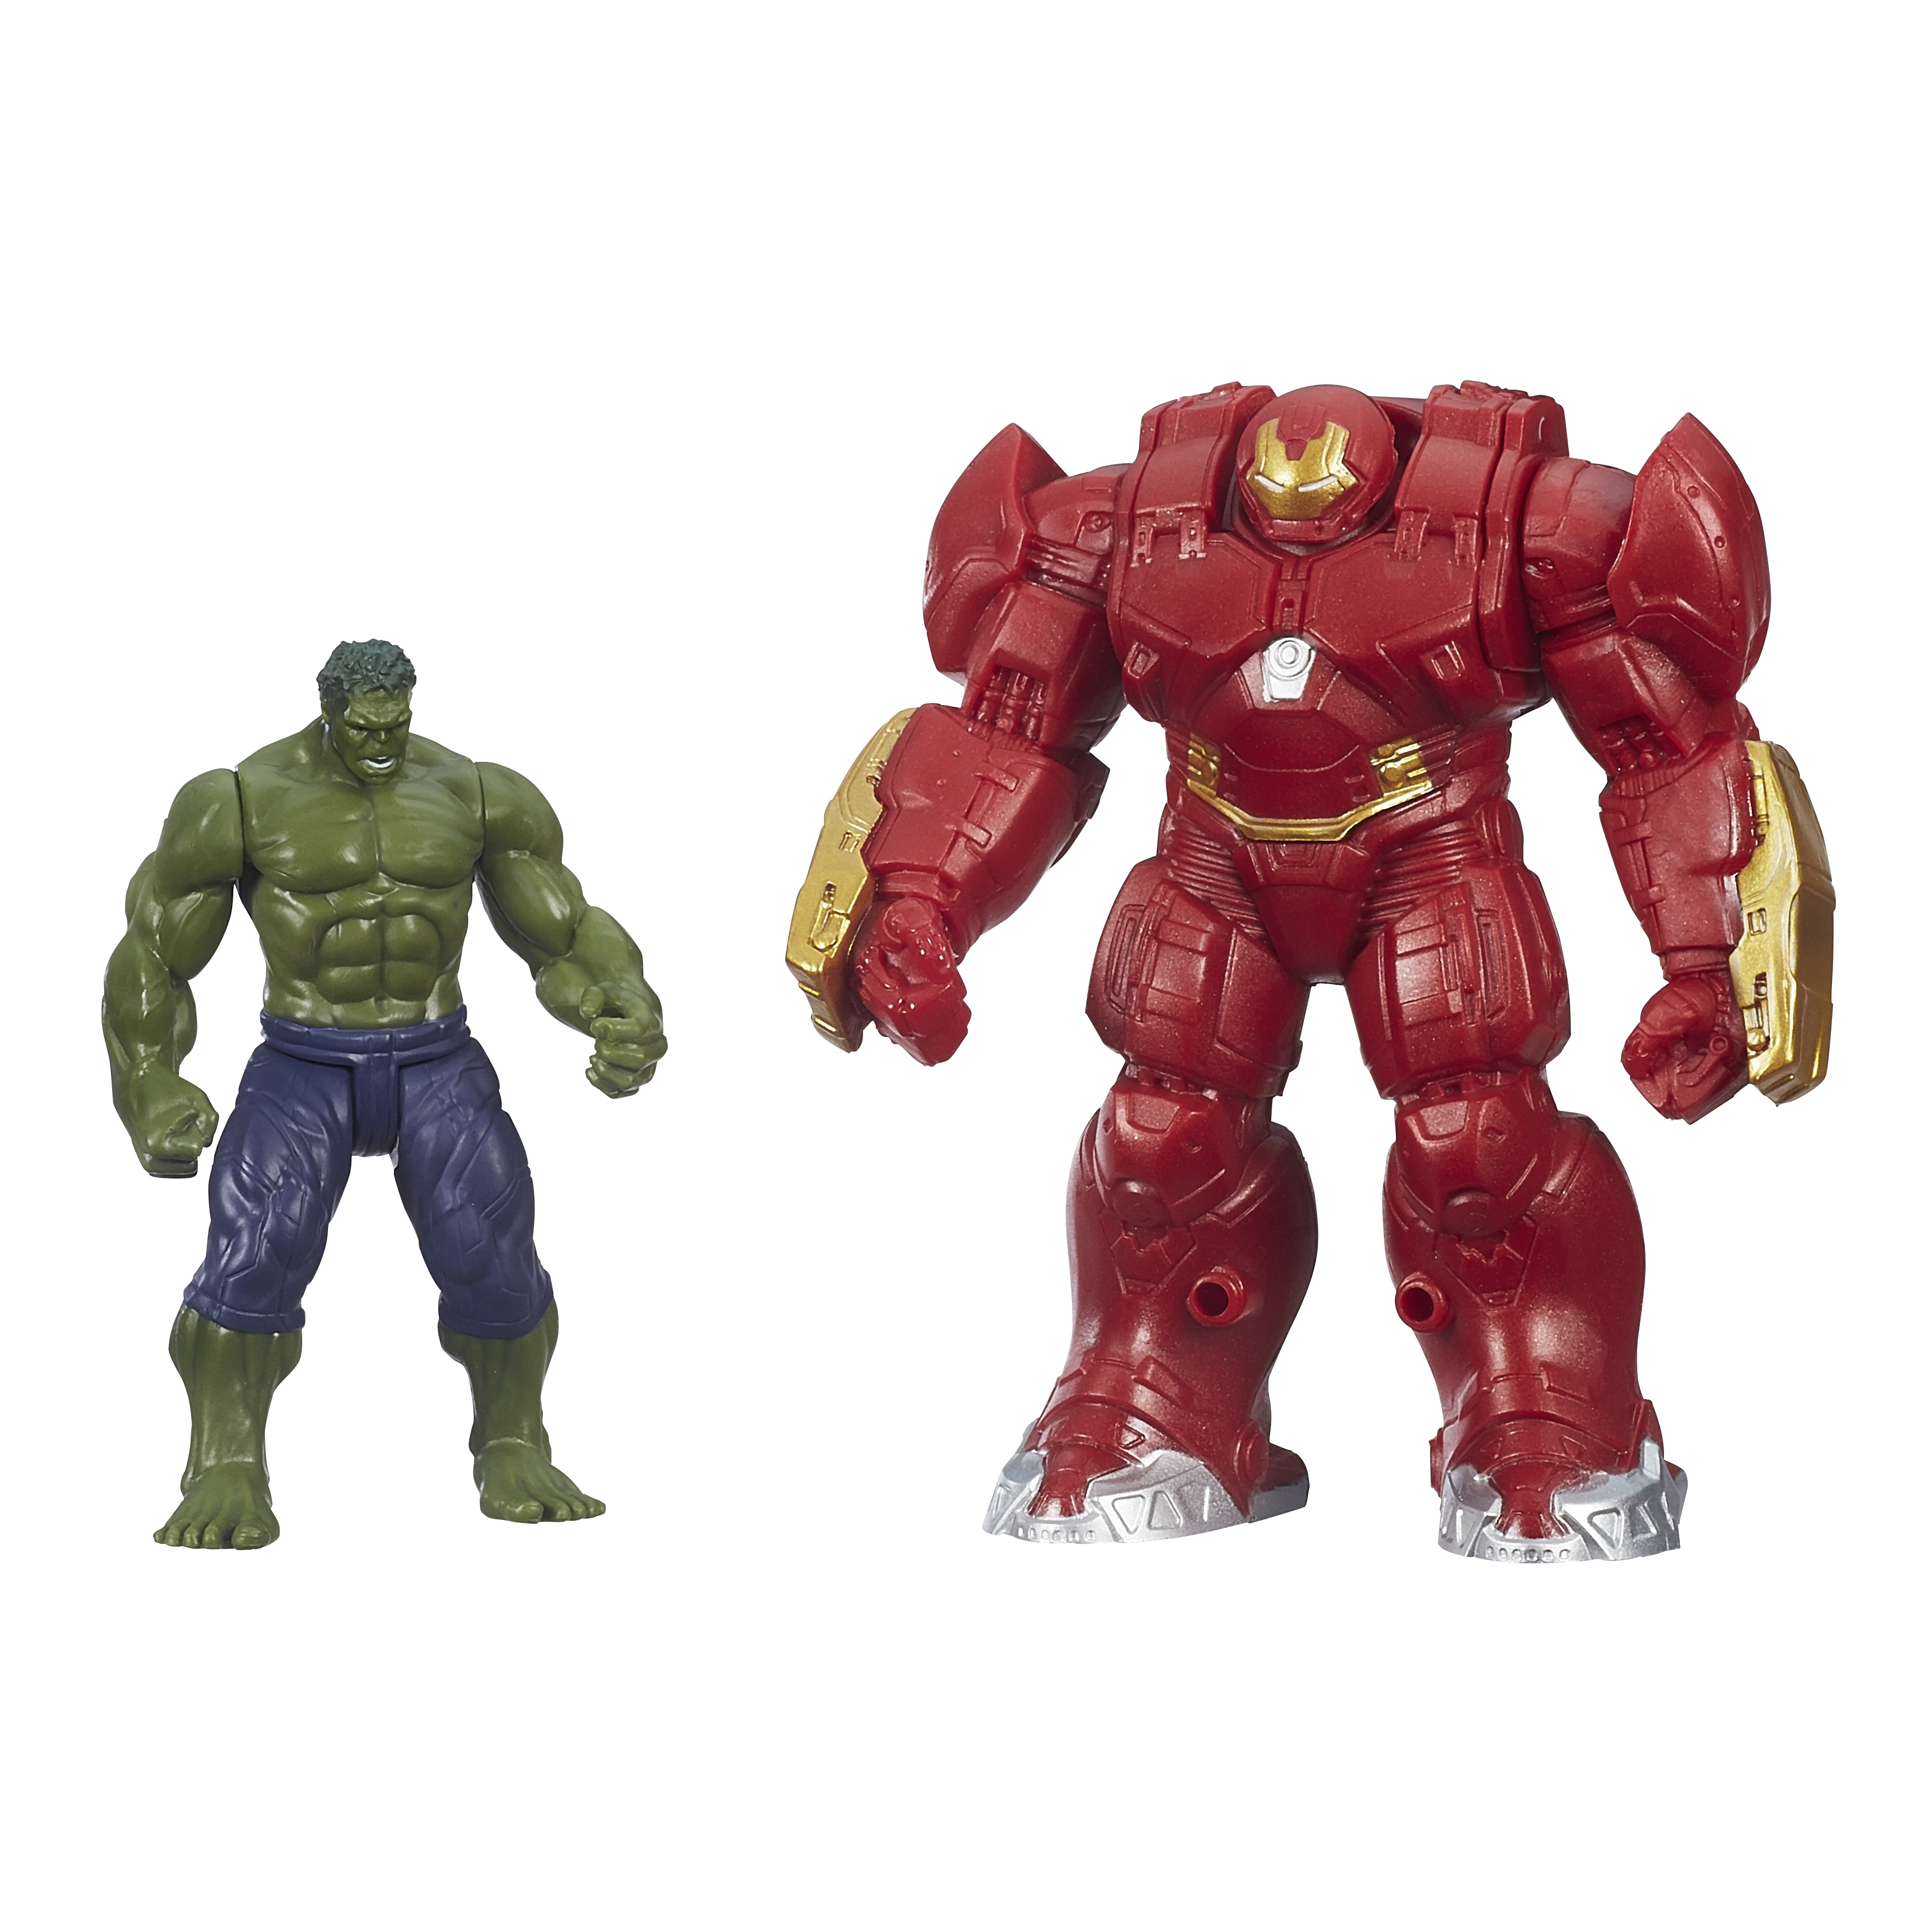 check out hasbro u0026 39 s avengers  age of ultron toys